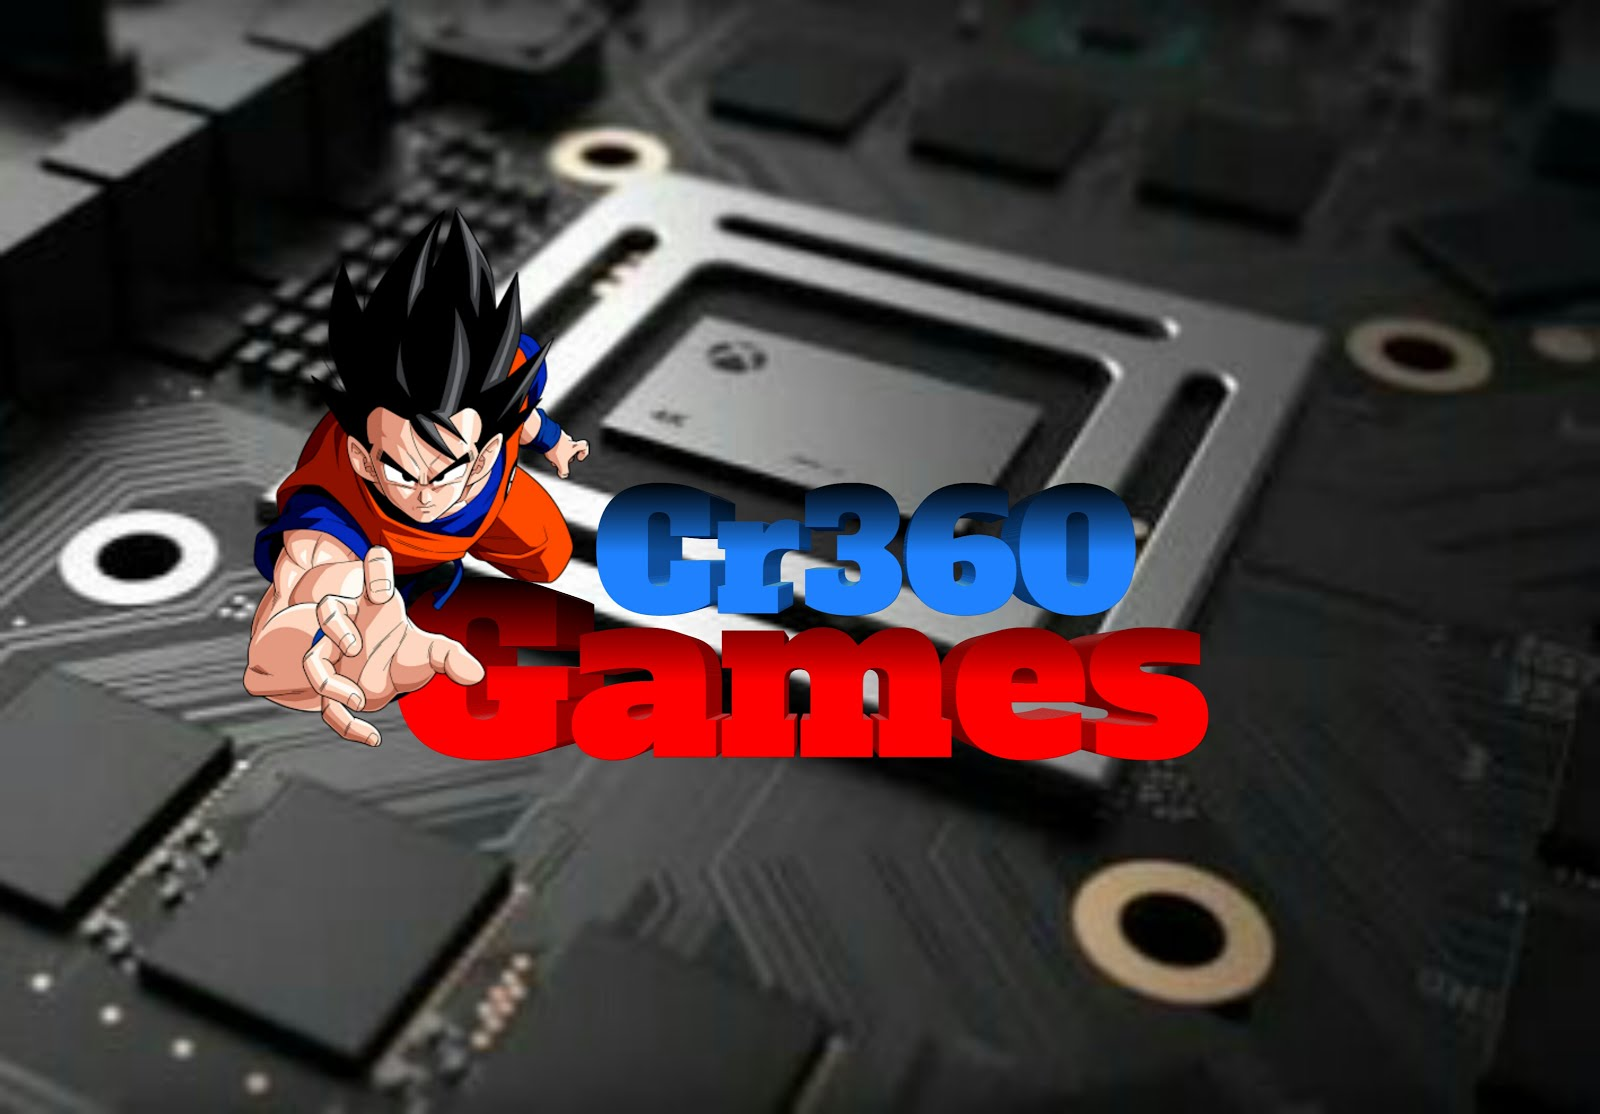 Cr360 Games